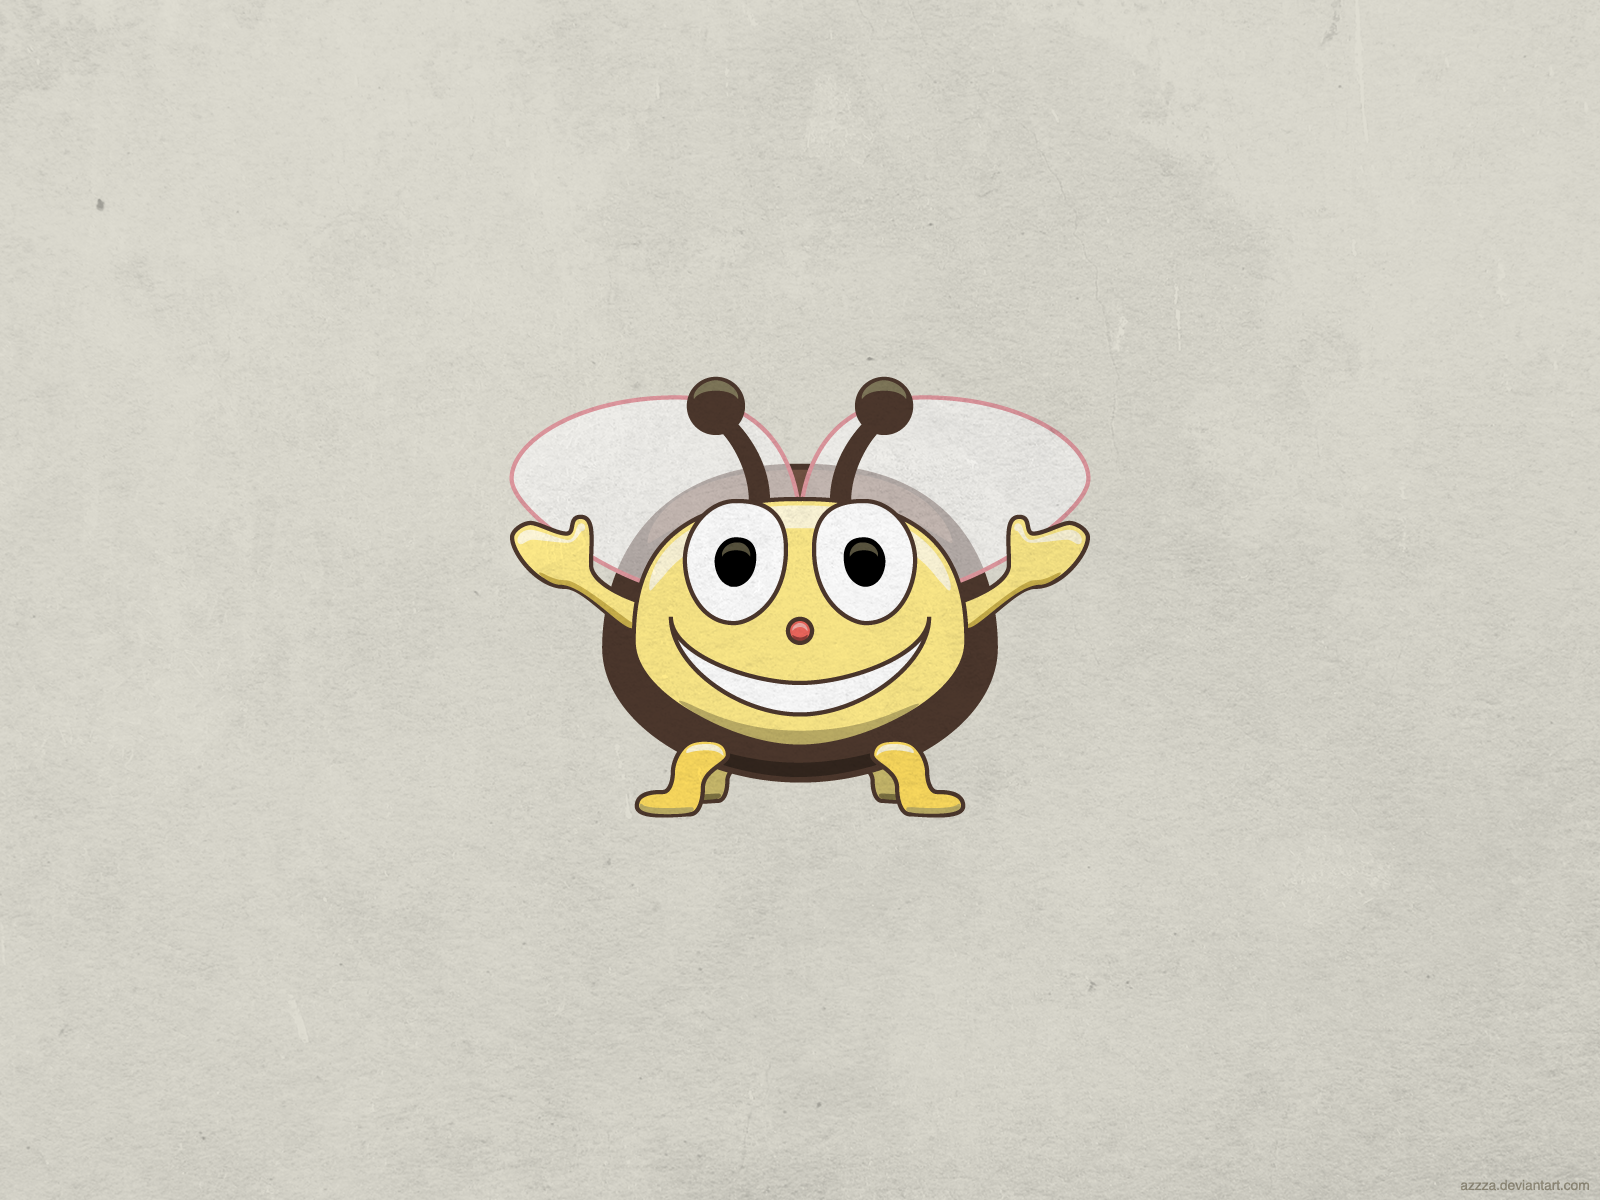 Cute Smiling Bee Wallpaper By Azzza